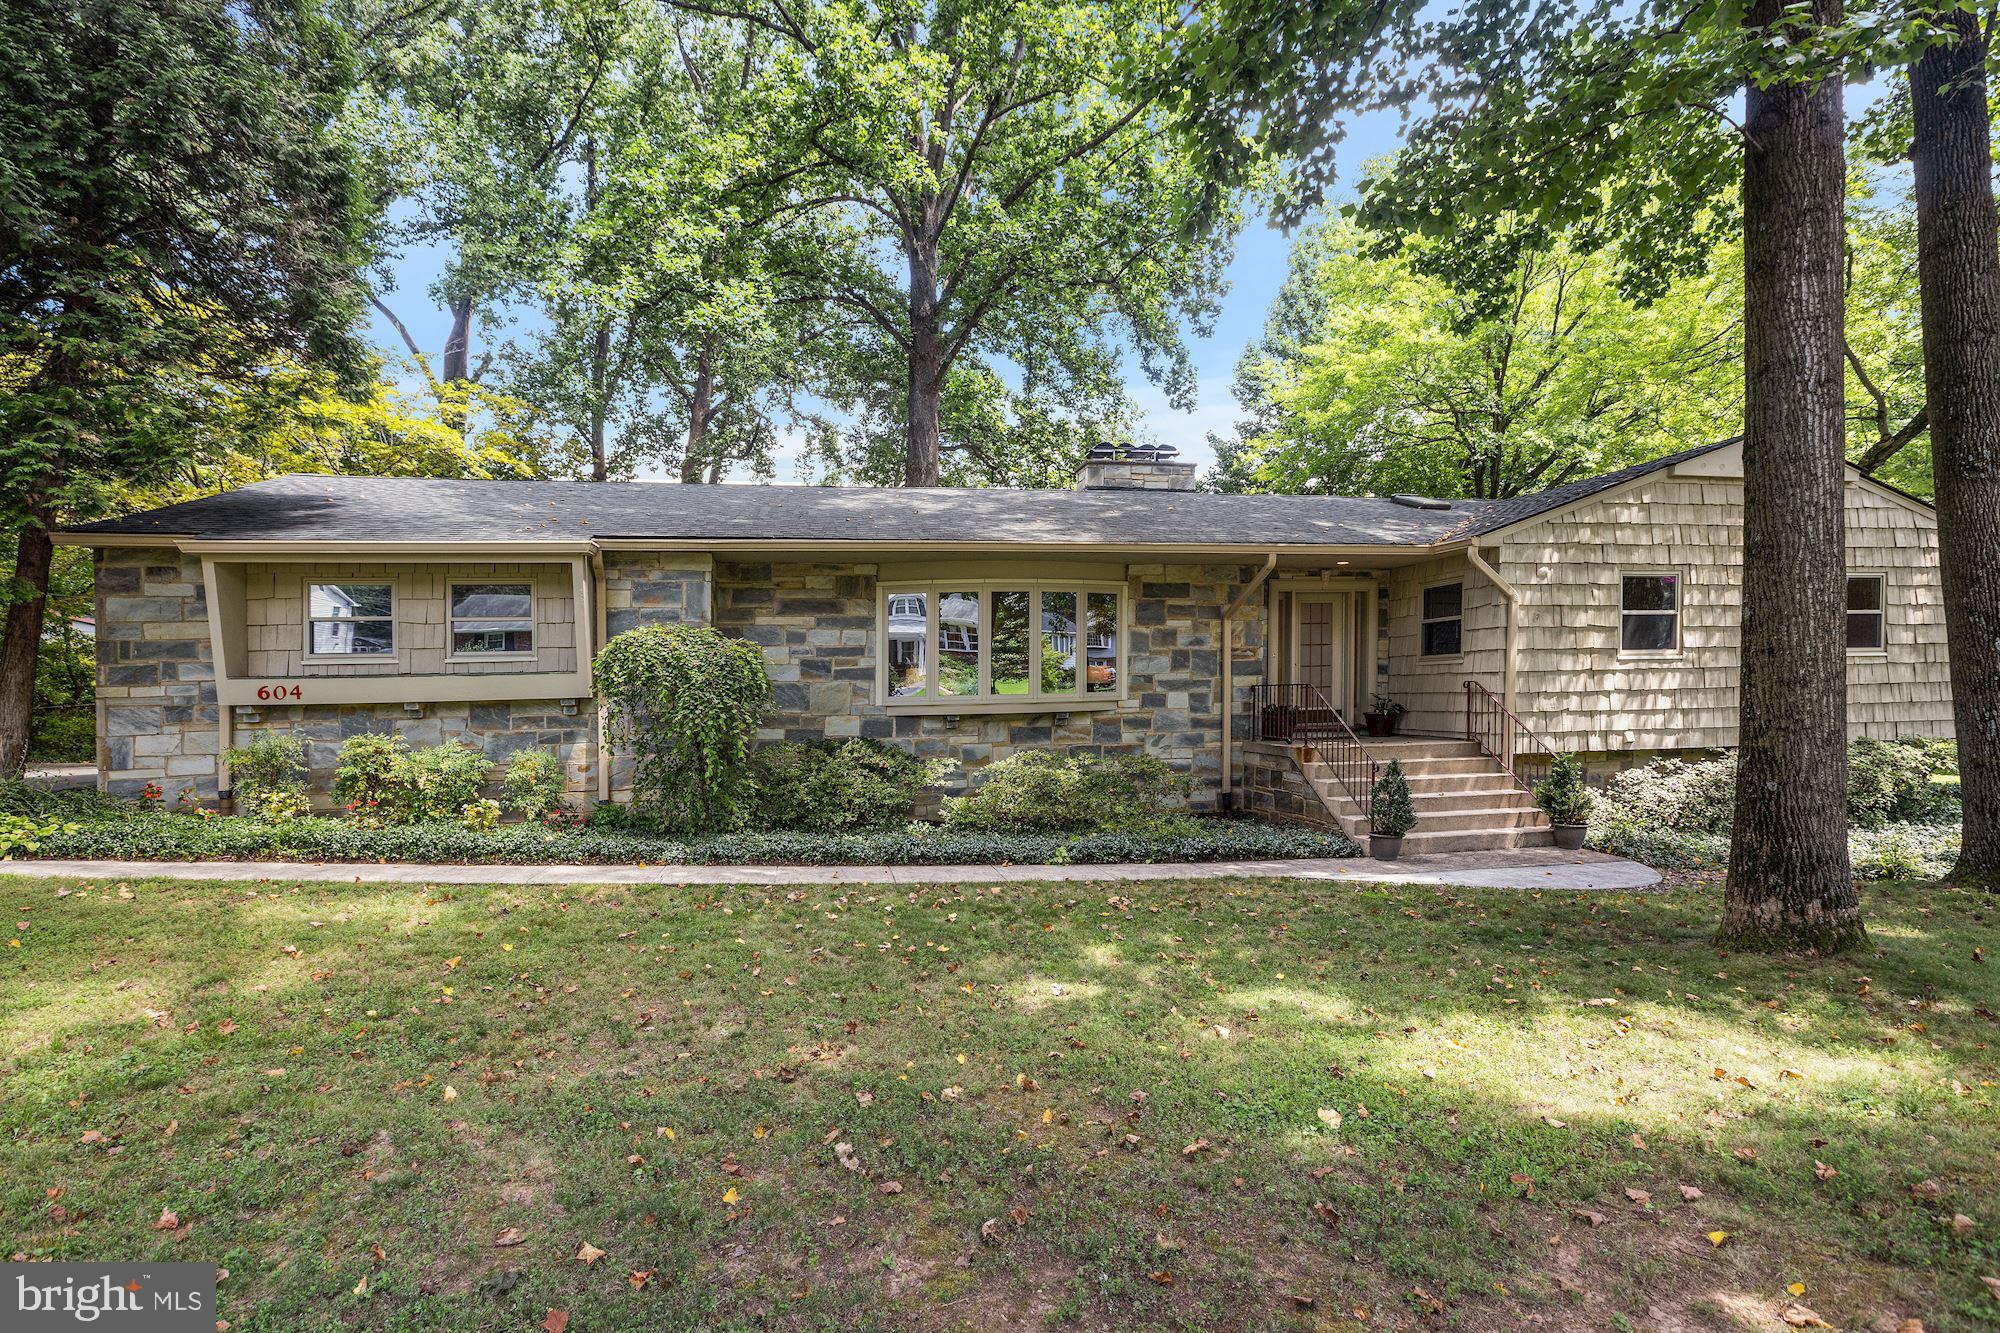 Beautifully maintained mid-century modern on a cul-de-sac with 4 bedrooms, 3 full and one half baths, and an attached two-car garage on a half acre lot in Falls Church City! Enter from the elevated front porch into a lovely foyer that steps down to a formal living room with hardwood floors, recessed lights, built-in bookshelves and a wood burning fireplace with stone surround. The formal dining room is perfect for entertaining and opens to a Florida Room with access to the 2-car garage. An updated kitchen complete with granite counters, custom high-end cabinetry, stainless steel appliances and recessed lights makes you feel like you're in the outdoors with the huge picture windows. The kitchen adjoins a breakfast room with another wood burning fireplace, all overlooking the picturesque, treed back yard. Enjoy a main level master suite with walk-in closet and updated bath. Across the hall, 2 more bedrooms share a full bath. A large lower level features an additional bedroom (with its own private entrance) and an office with a walk-in closet. A full bath with a conveniently located laundry room are just down the hall. The spacious rec room with wood burning fireplace and wet bar connects to a powder room and large storage room to complete the lower level. Ideally located just steps from Roberts Park and the W&OD Trail and moments to West Falls Church Metro, I-66 and the highly rated schools of Falls Church City!